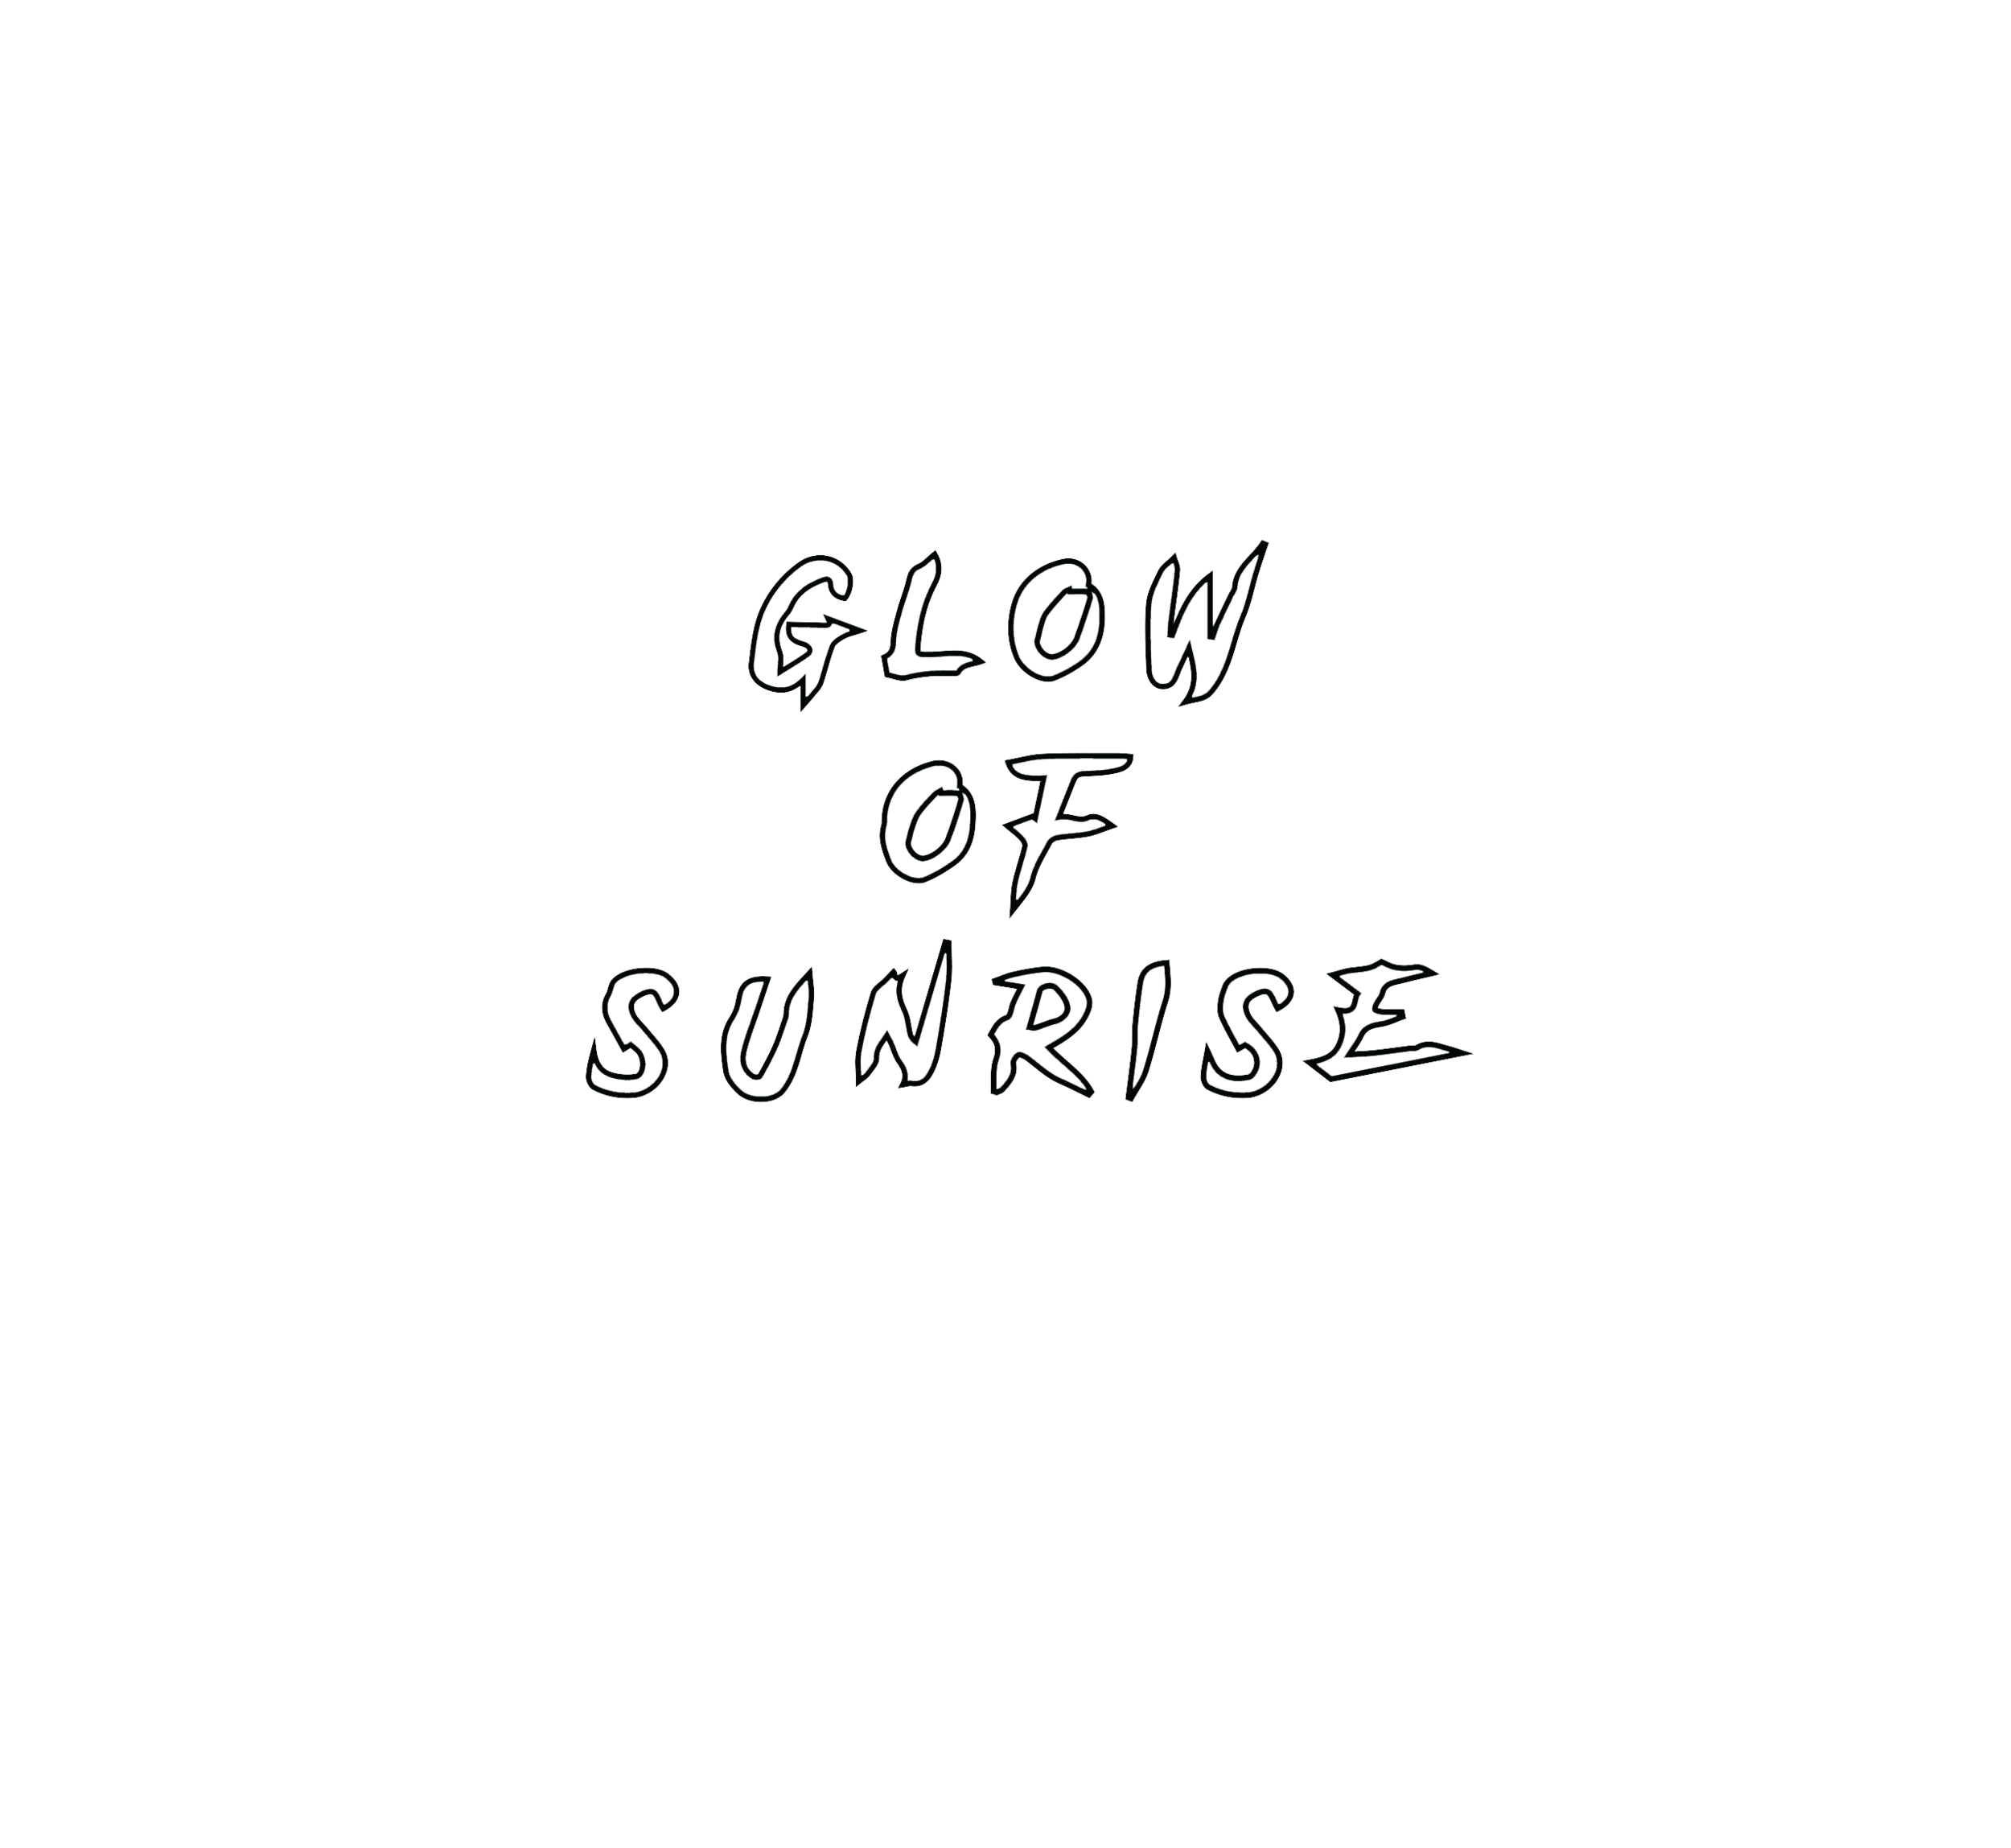 GET IN TOUCH - Glow Of Sunrise welcomes collaborations, partnerships, music submissions, or just general inquires. Fill out the form below and we will be in contact soon!